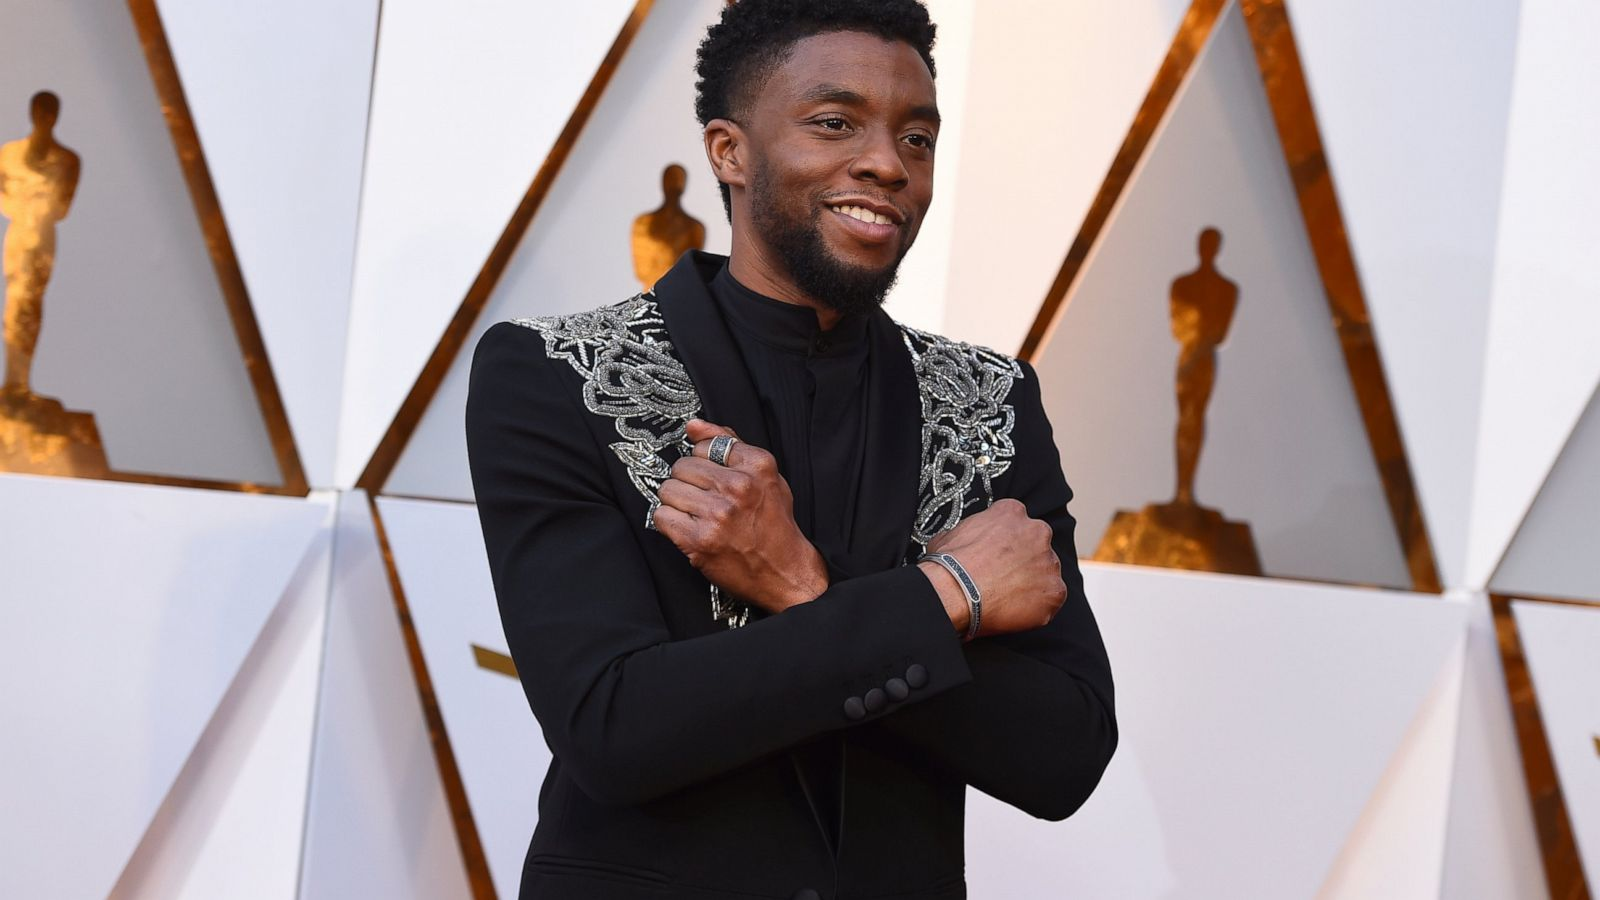 Chadwick Boseman, who embodied Black icons, dies of cancer - ABC News